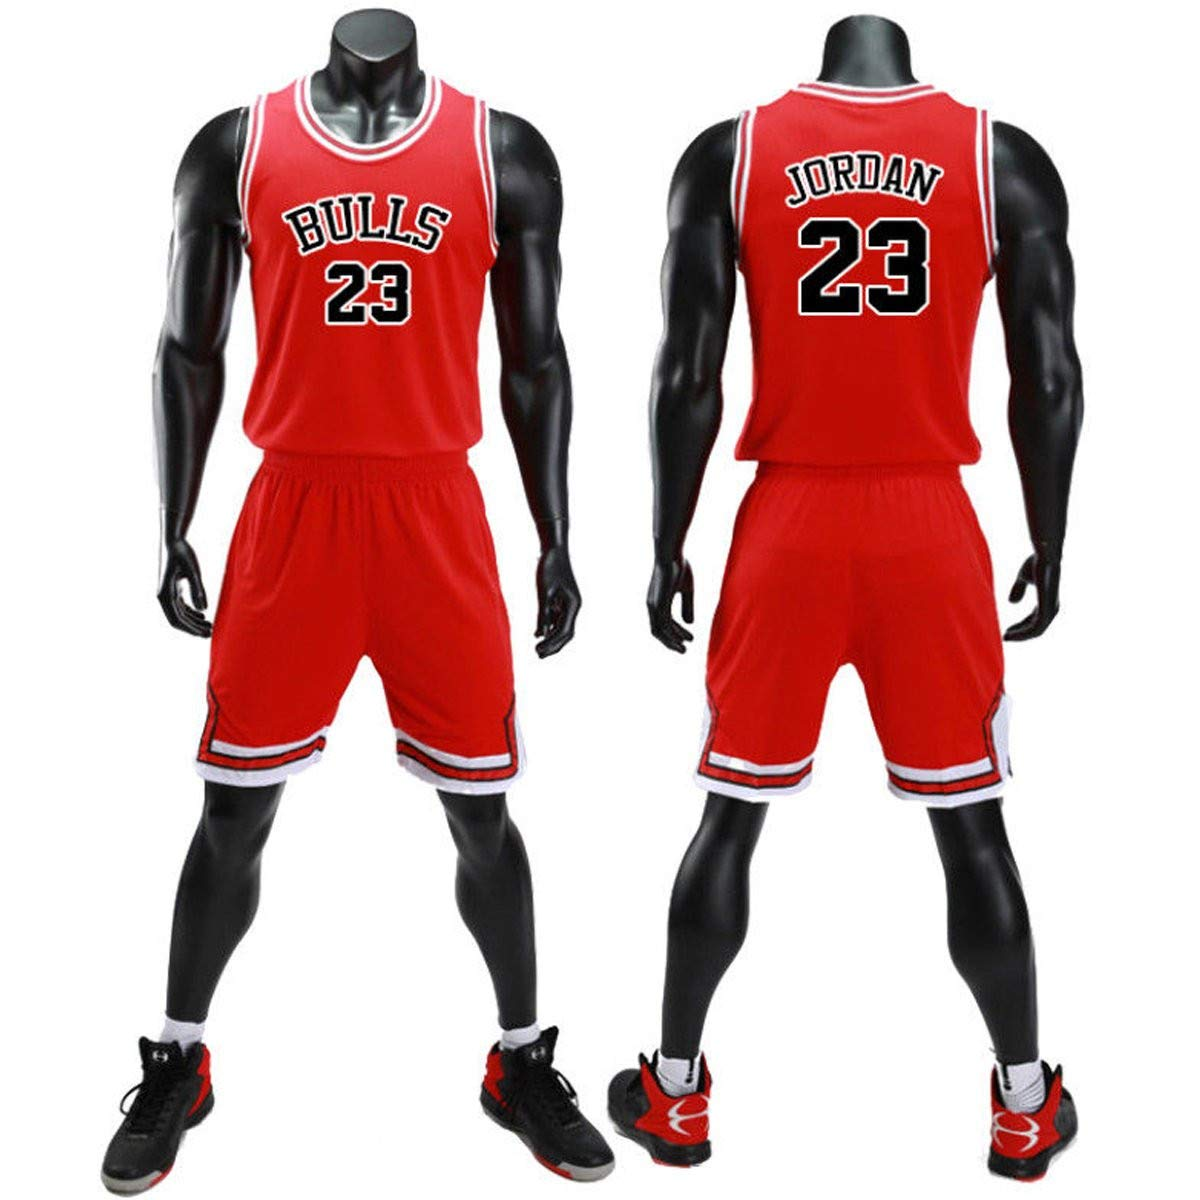 Faith Wings Hommes Adulte NBA Bucks Antetokounmpo34 Lakers Bryant24/James23 Bulls Jordan 23 Maillot Basketball Jersey Basket Maillots Short de Basket Uniforme Top Nouveau Tissu Brodé Vêtements Fantaisie et Specialty